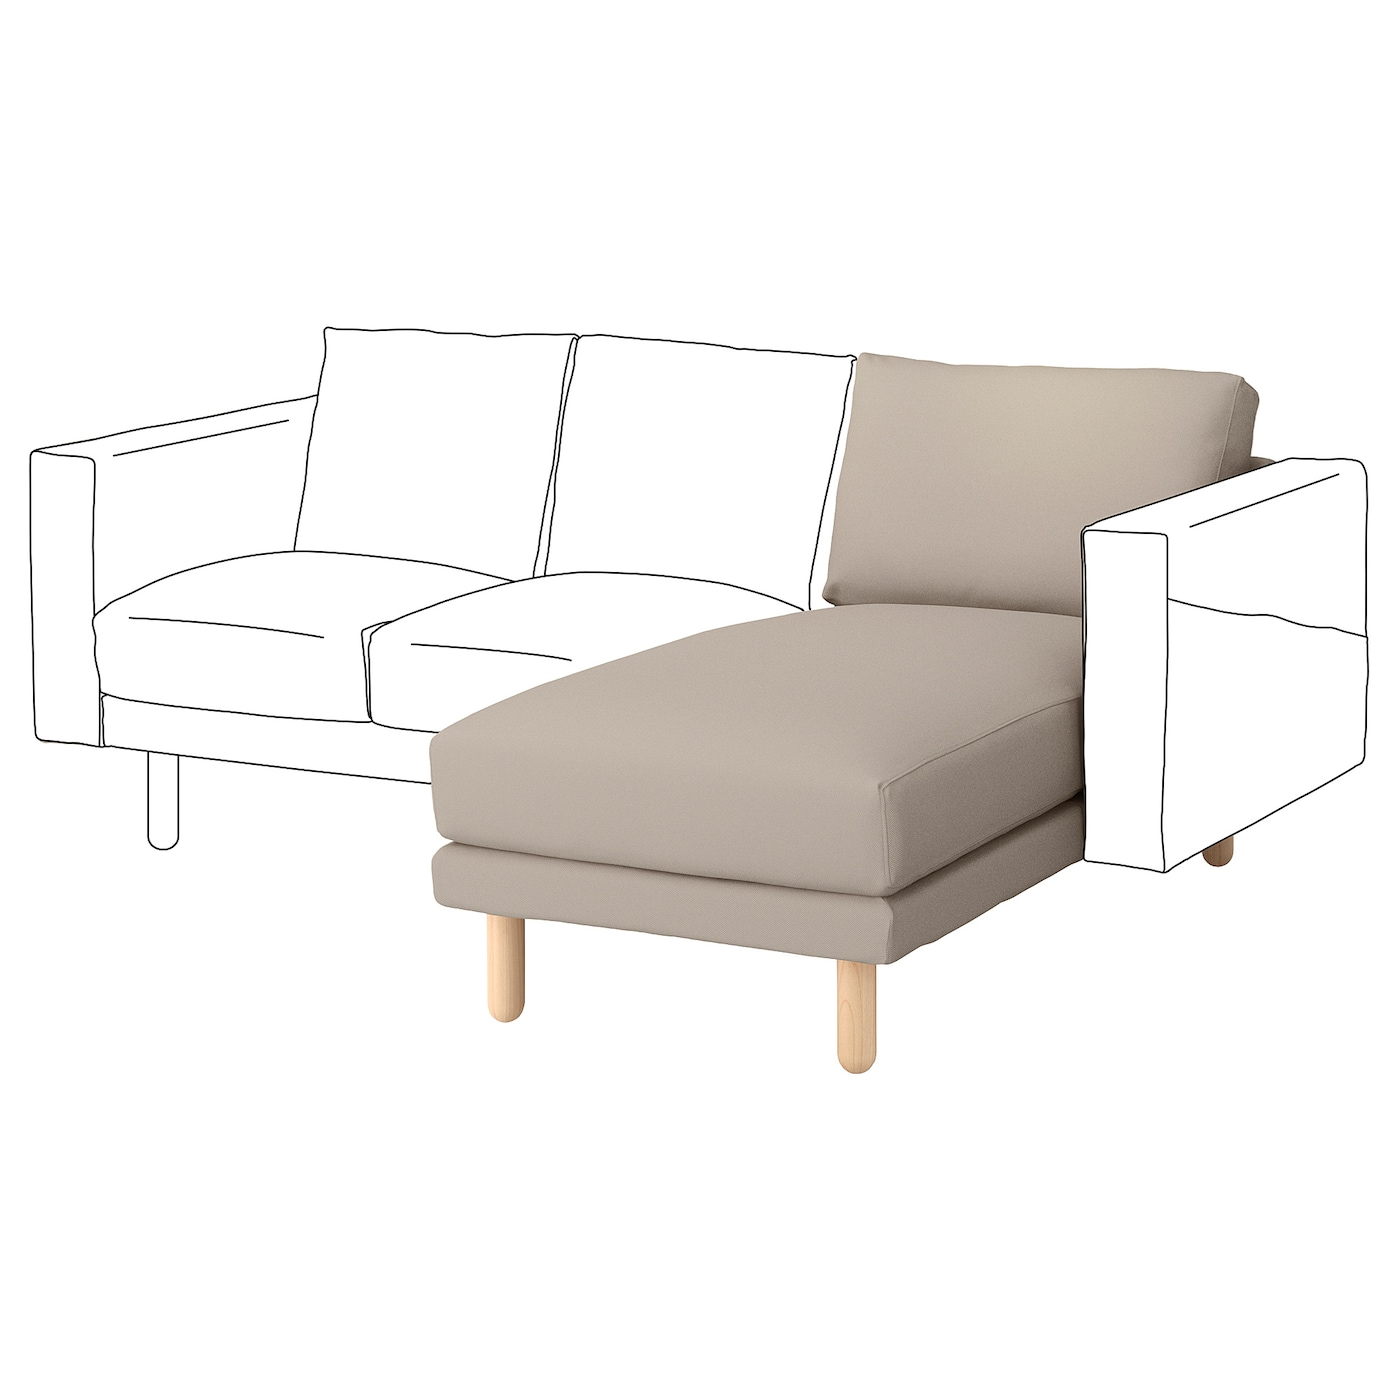 Norsborg cover chaise longue section gr sbo beige ikea for Chaise longue ikea